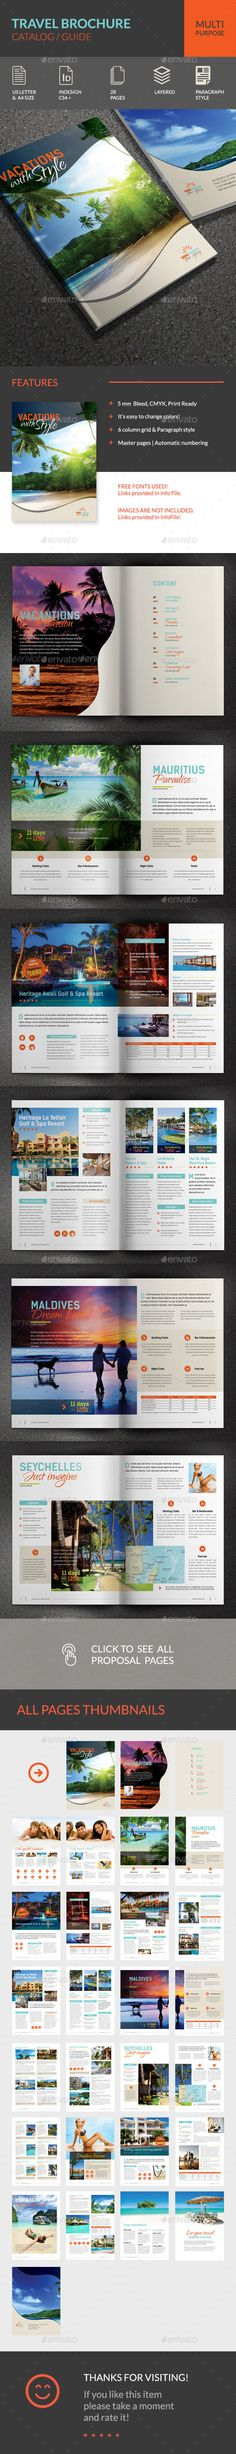 Travel Brochure Catalog Indesign Template V  Indesign Templates